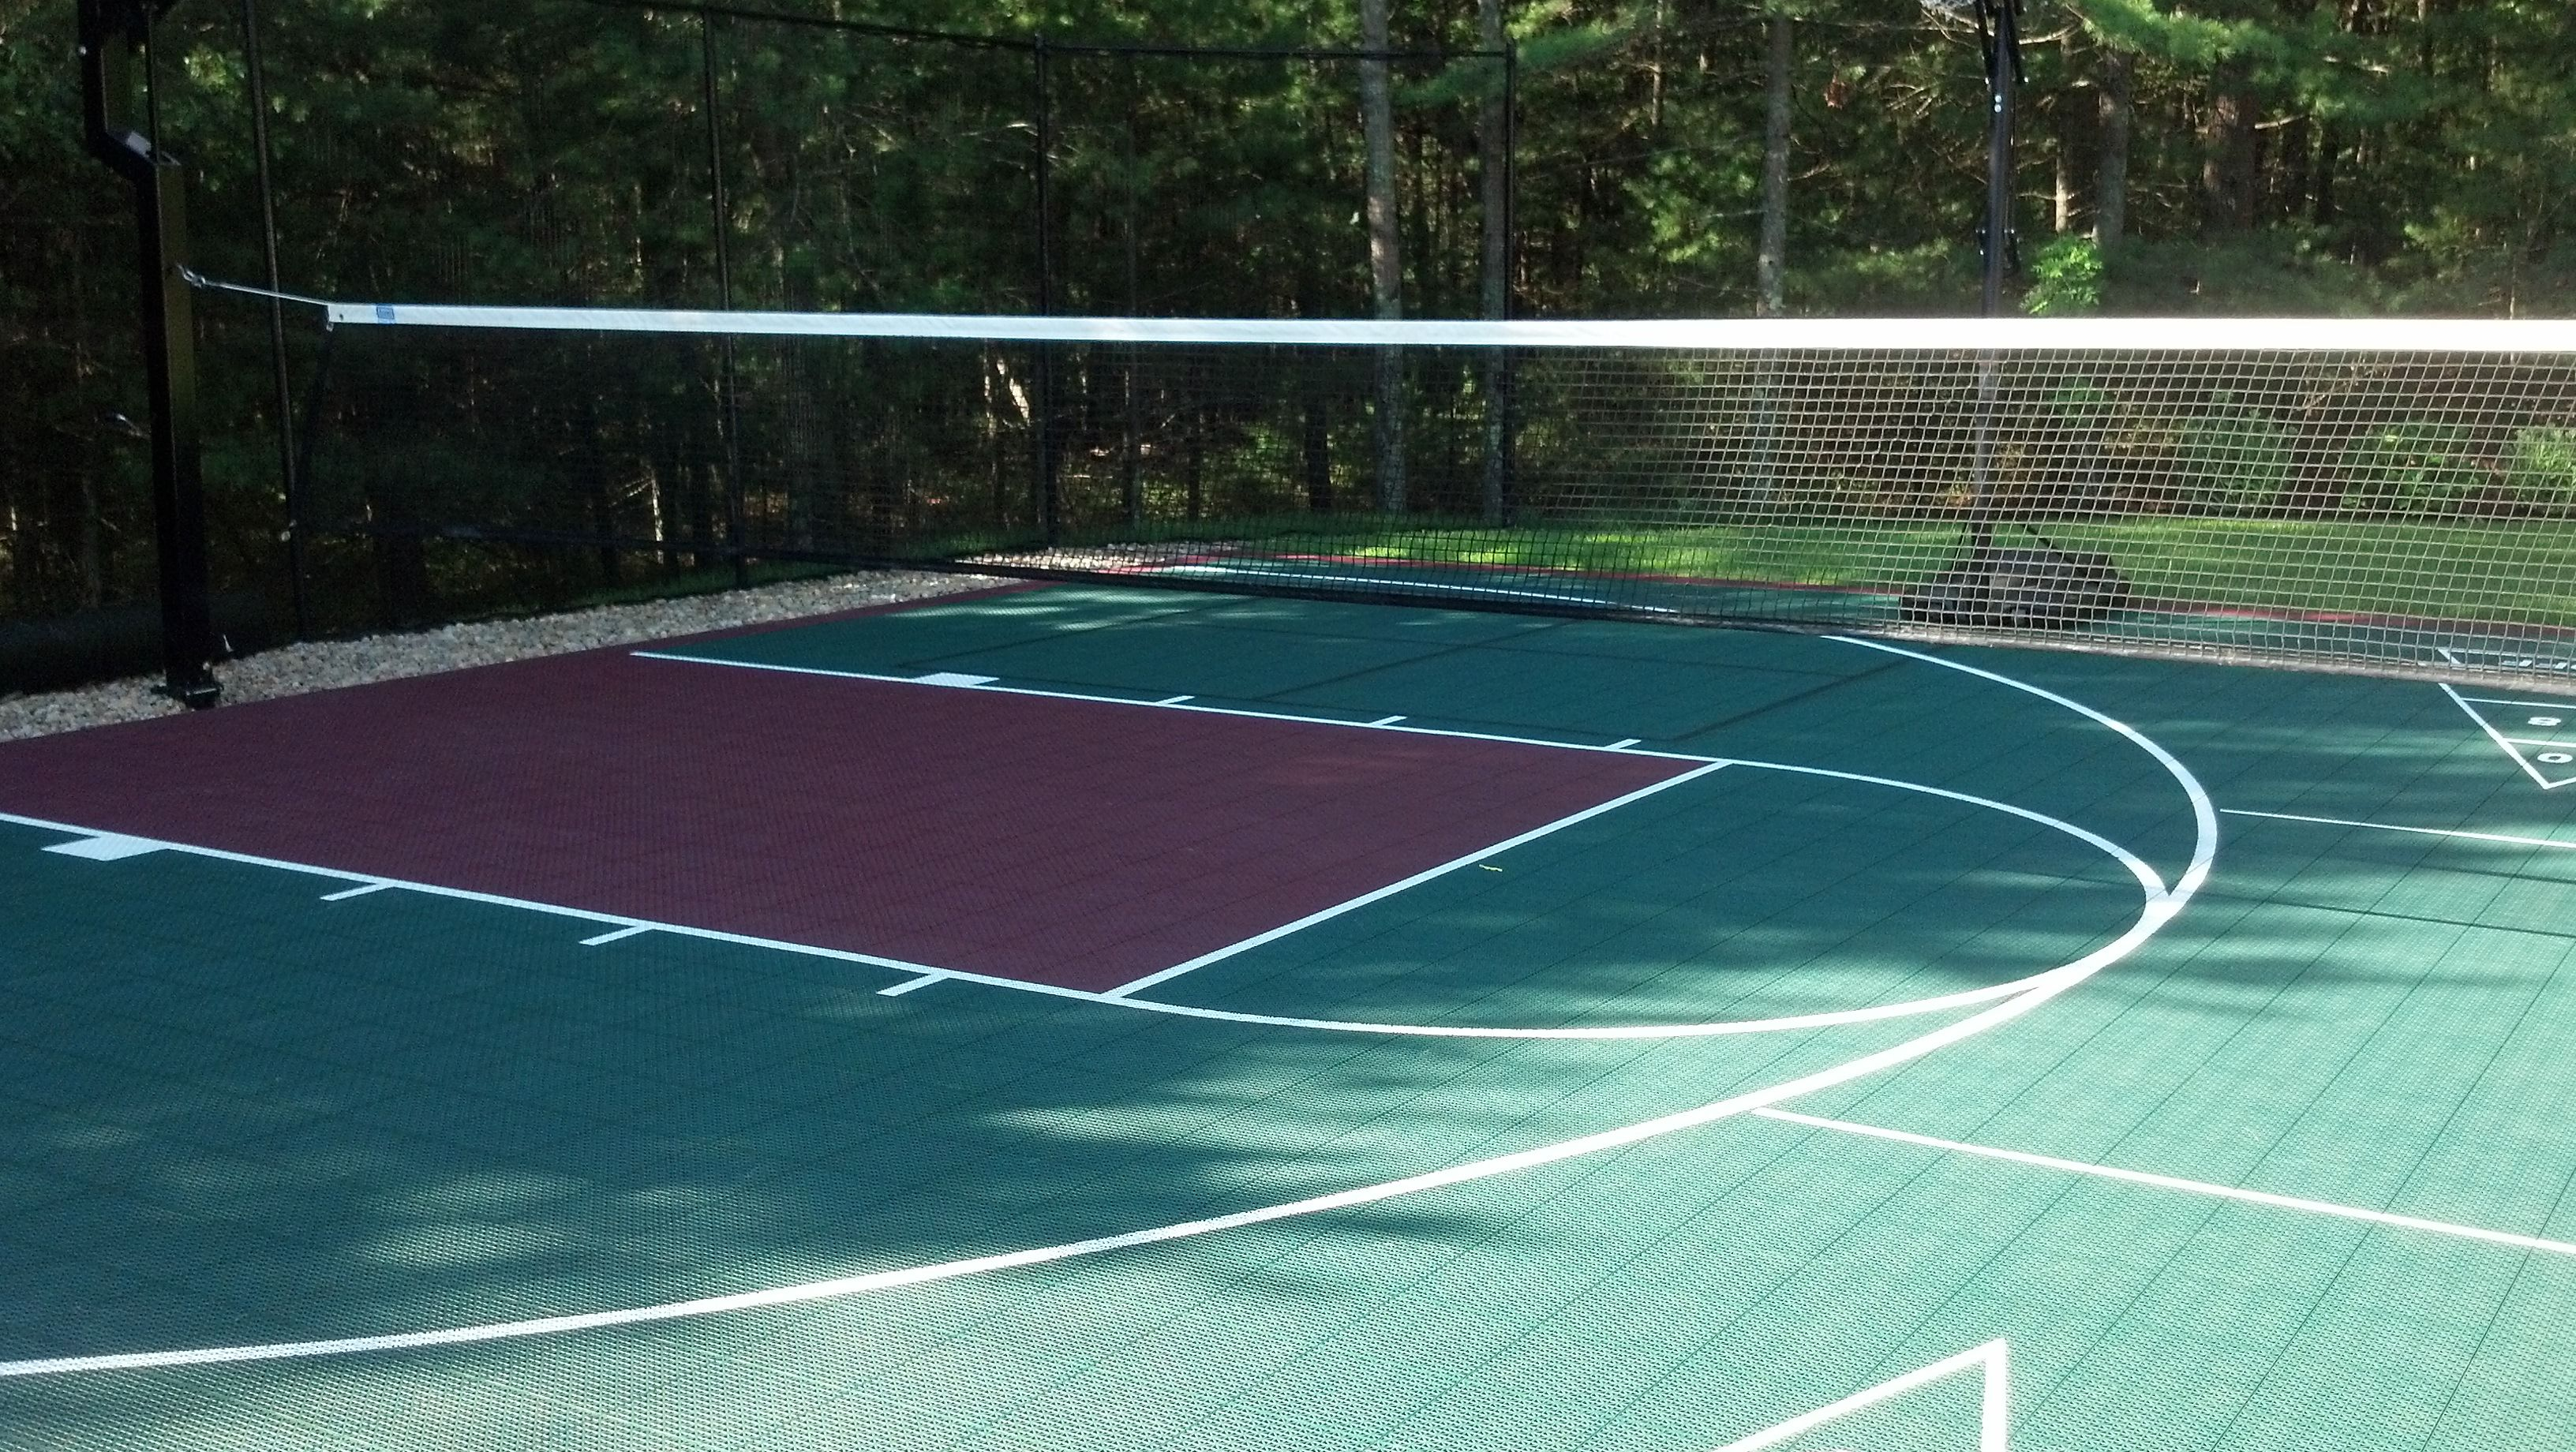 Pin by Bob Whyte on Basketball courts Pinterest